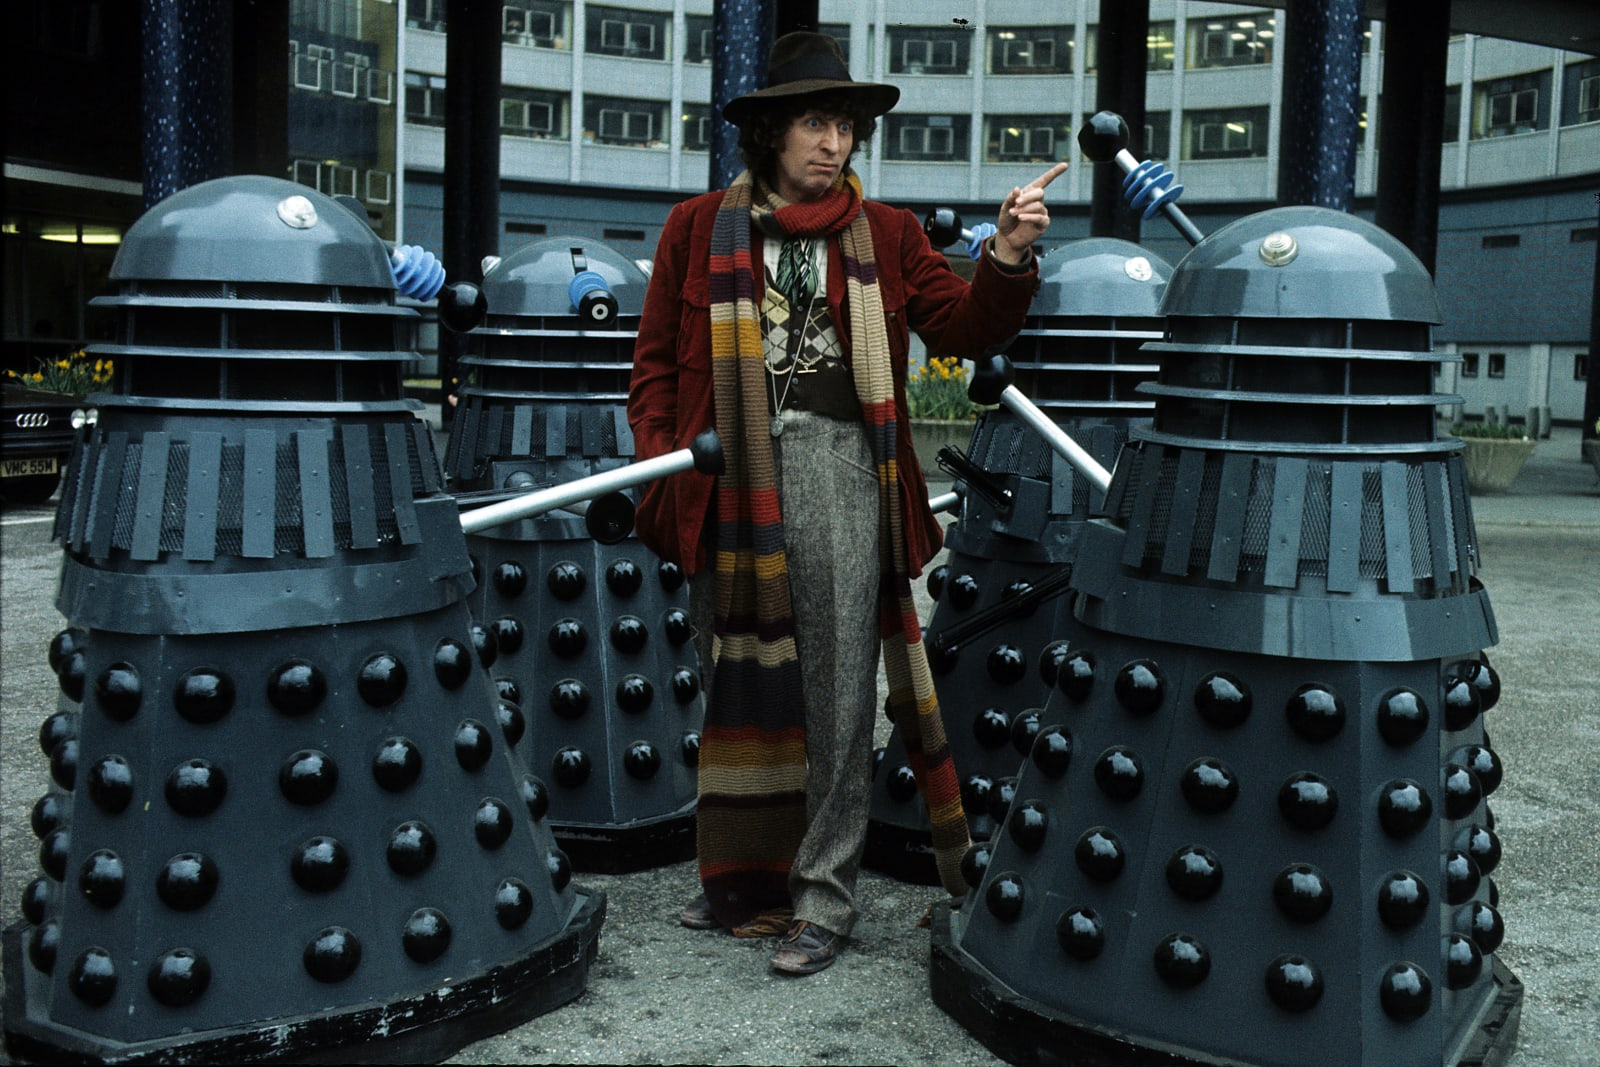 Twitch is hosting a seven-week 'Doctor Who' viewing event